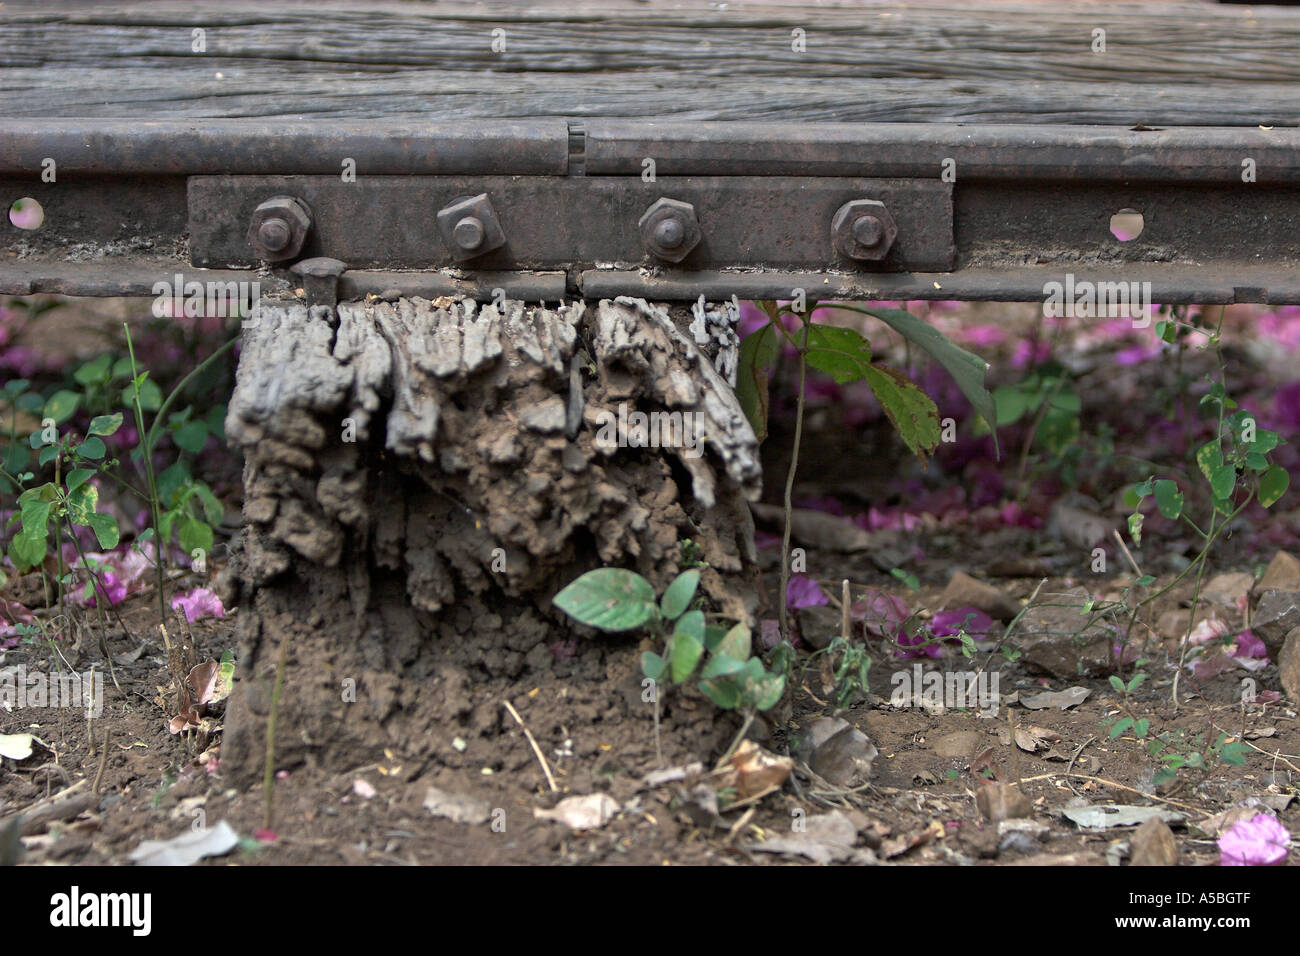 Rotting sleeper and old section of track Burma Railway Thailand. - Stock Image